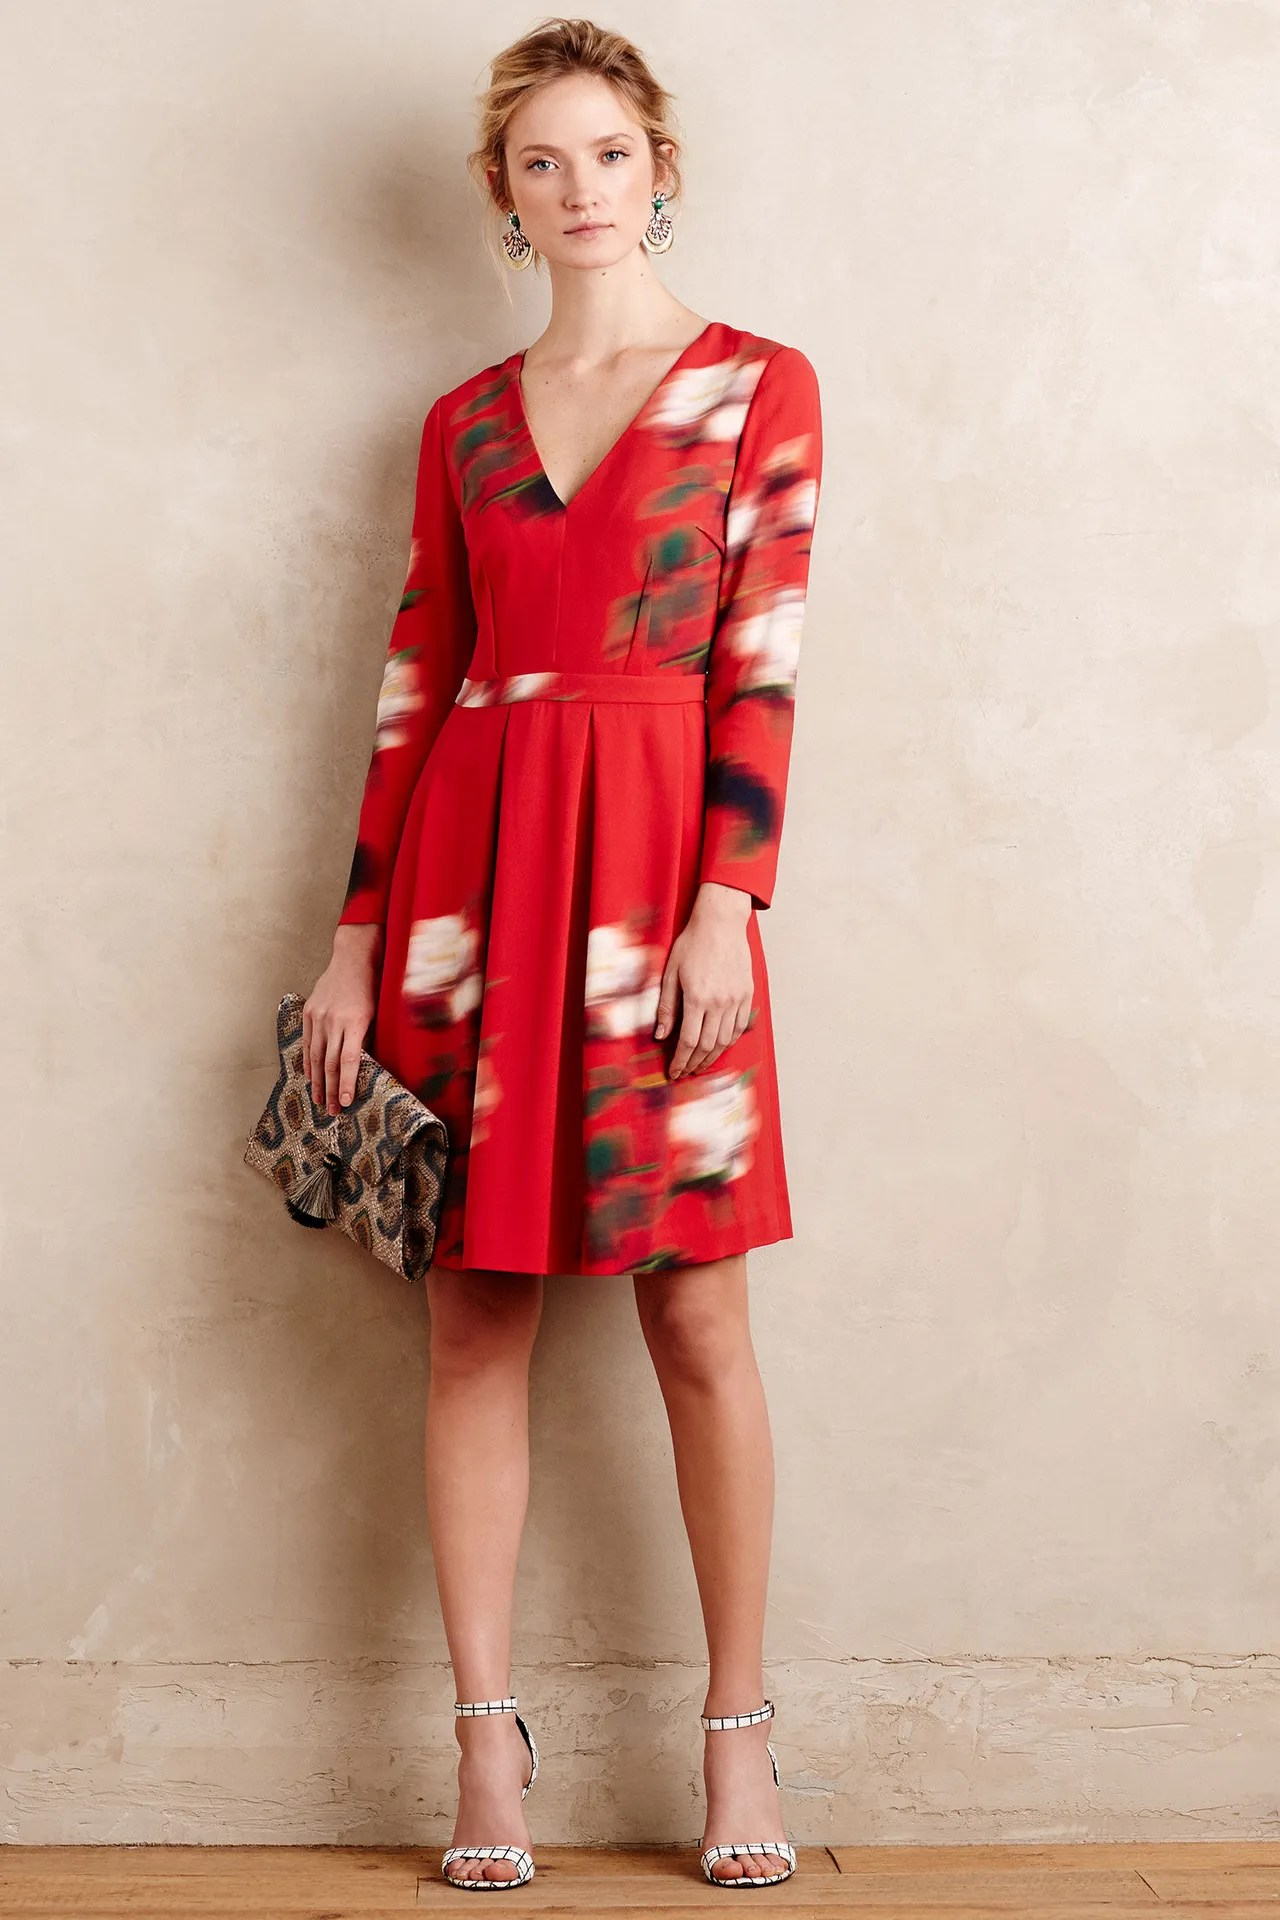 Contemporary Peter Som Anthropologie Collaboration Fall 2015 Red Floral Dress Dresses Work Are From Peter Som X Anthropologie Dress Tv Show Dress Hours wedding dress The Perfect Dress